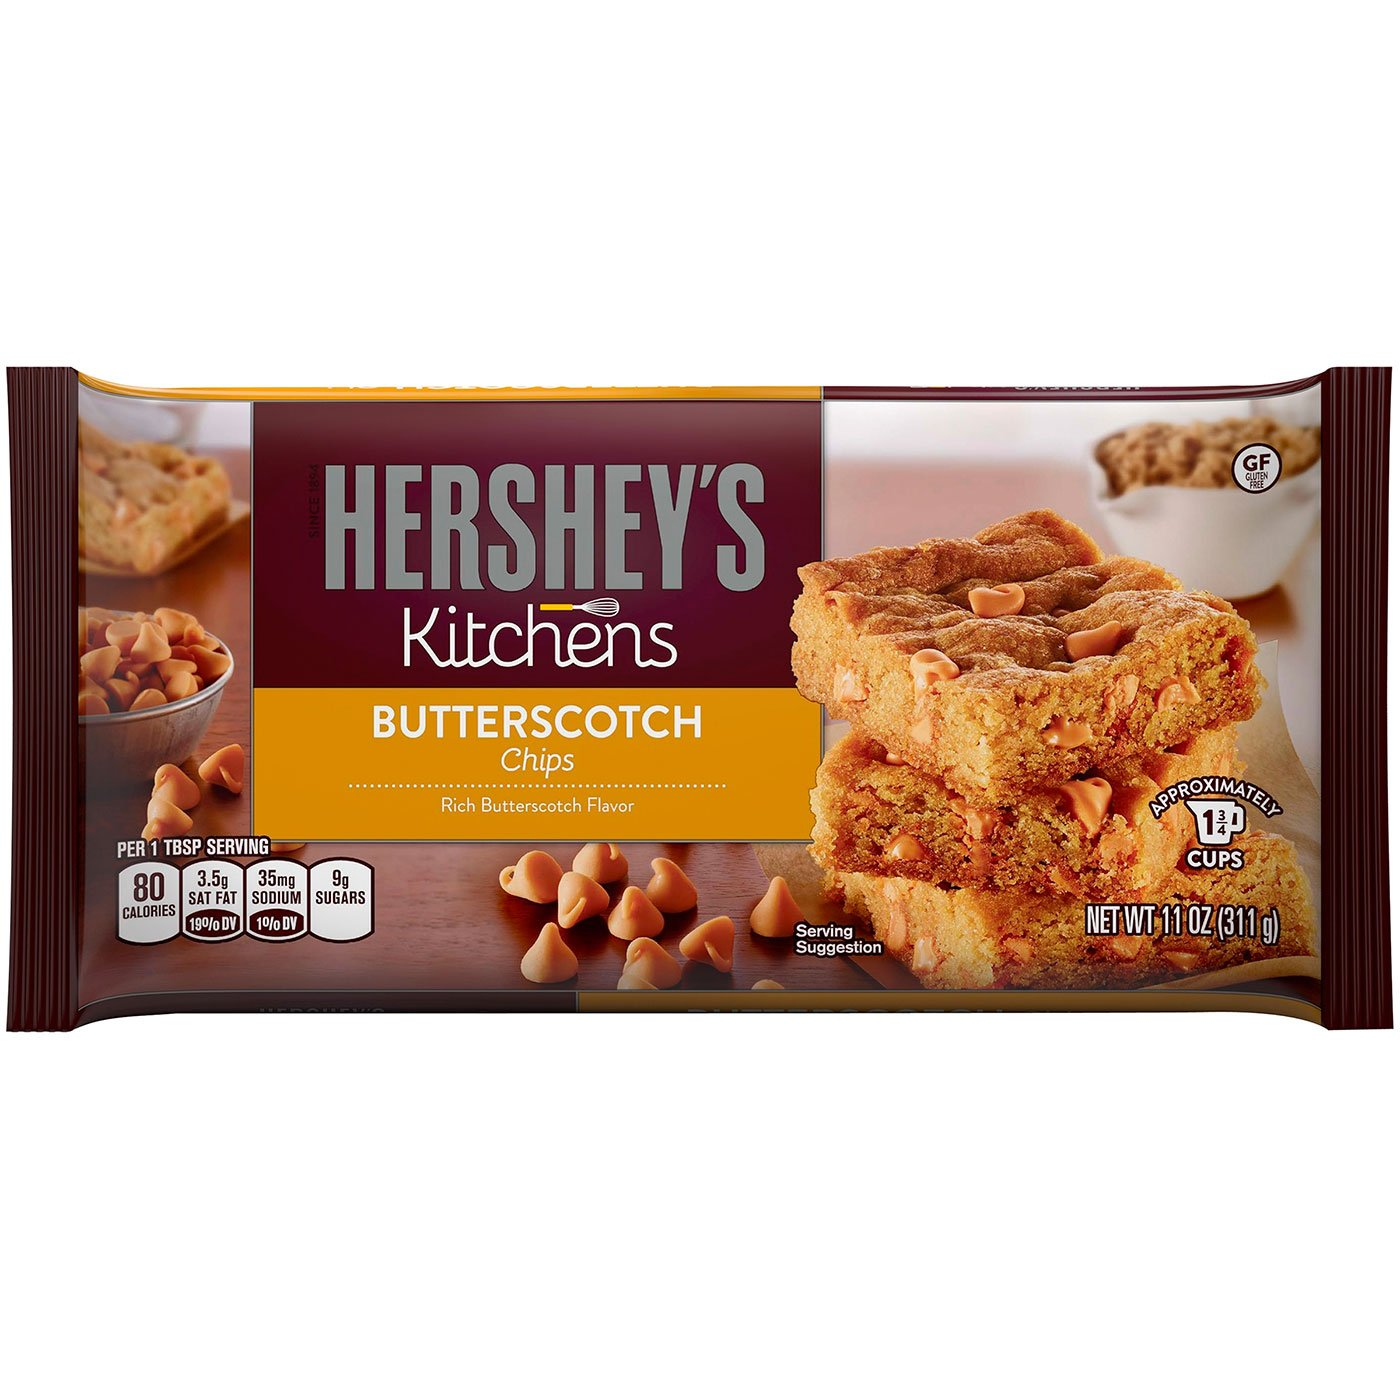 Hershey's Kitchens Butterscotch Chips (311g)-0